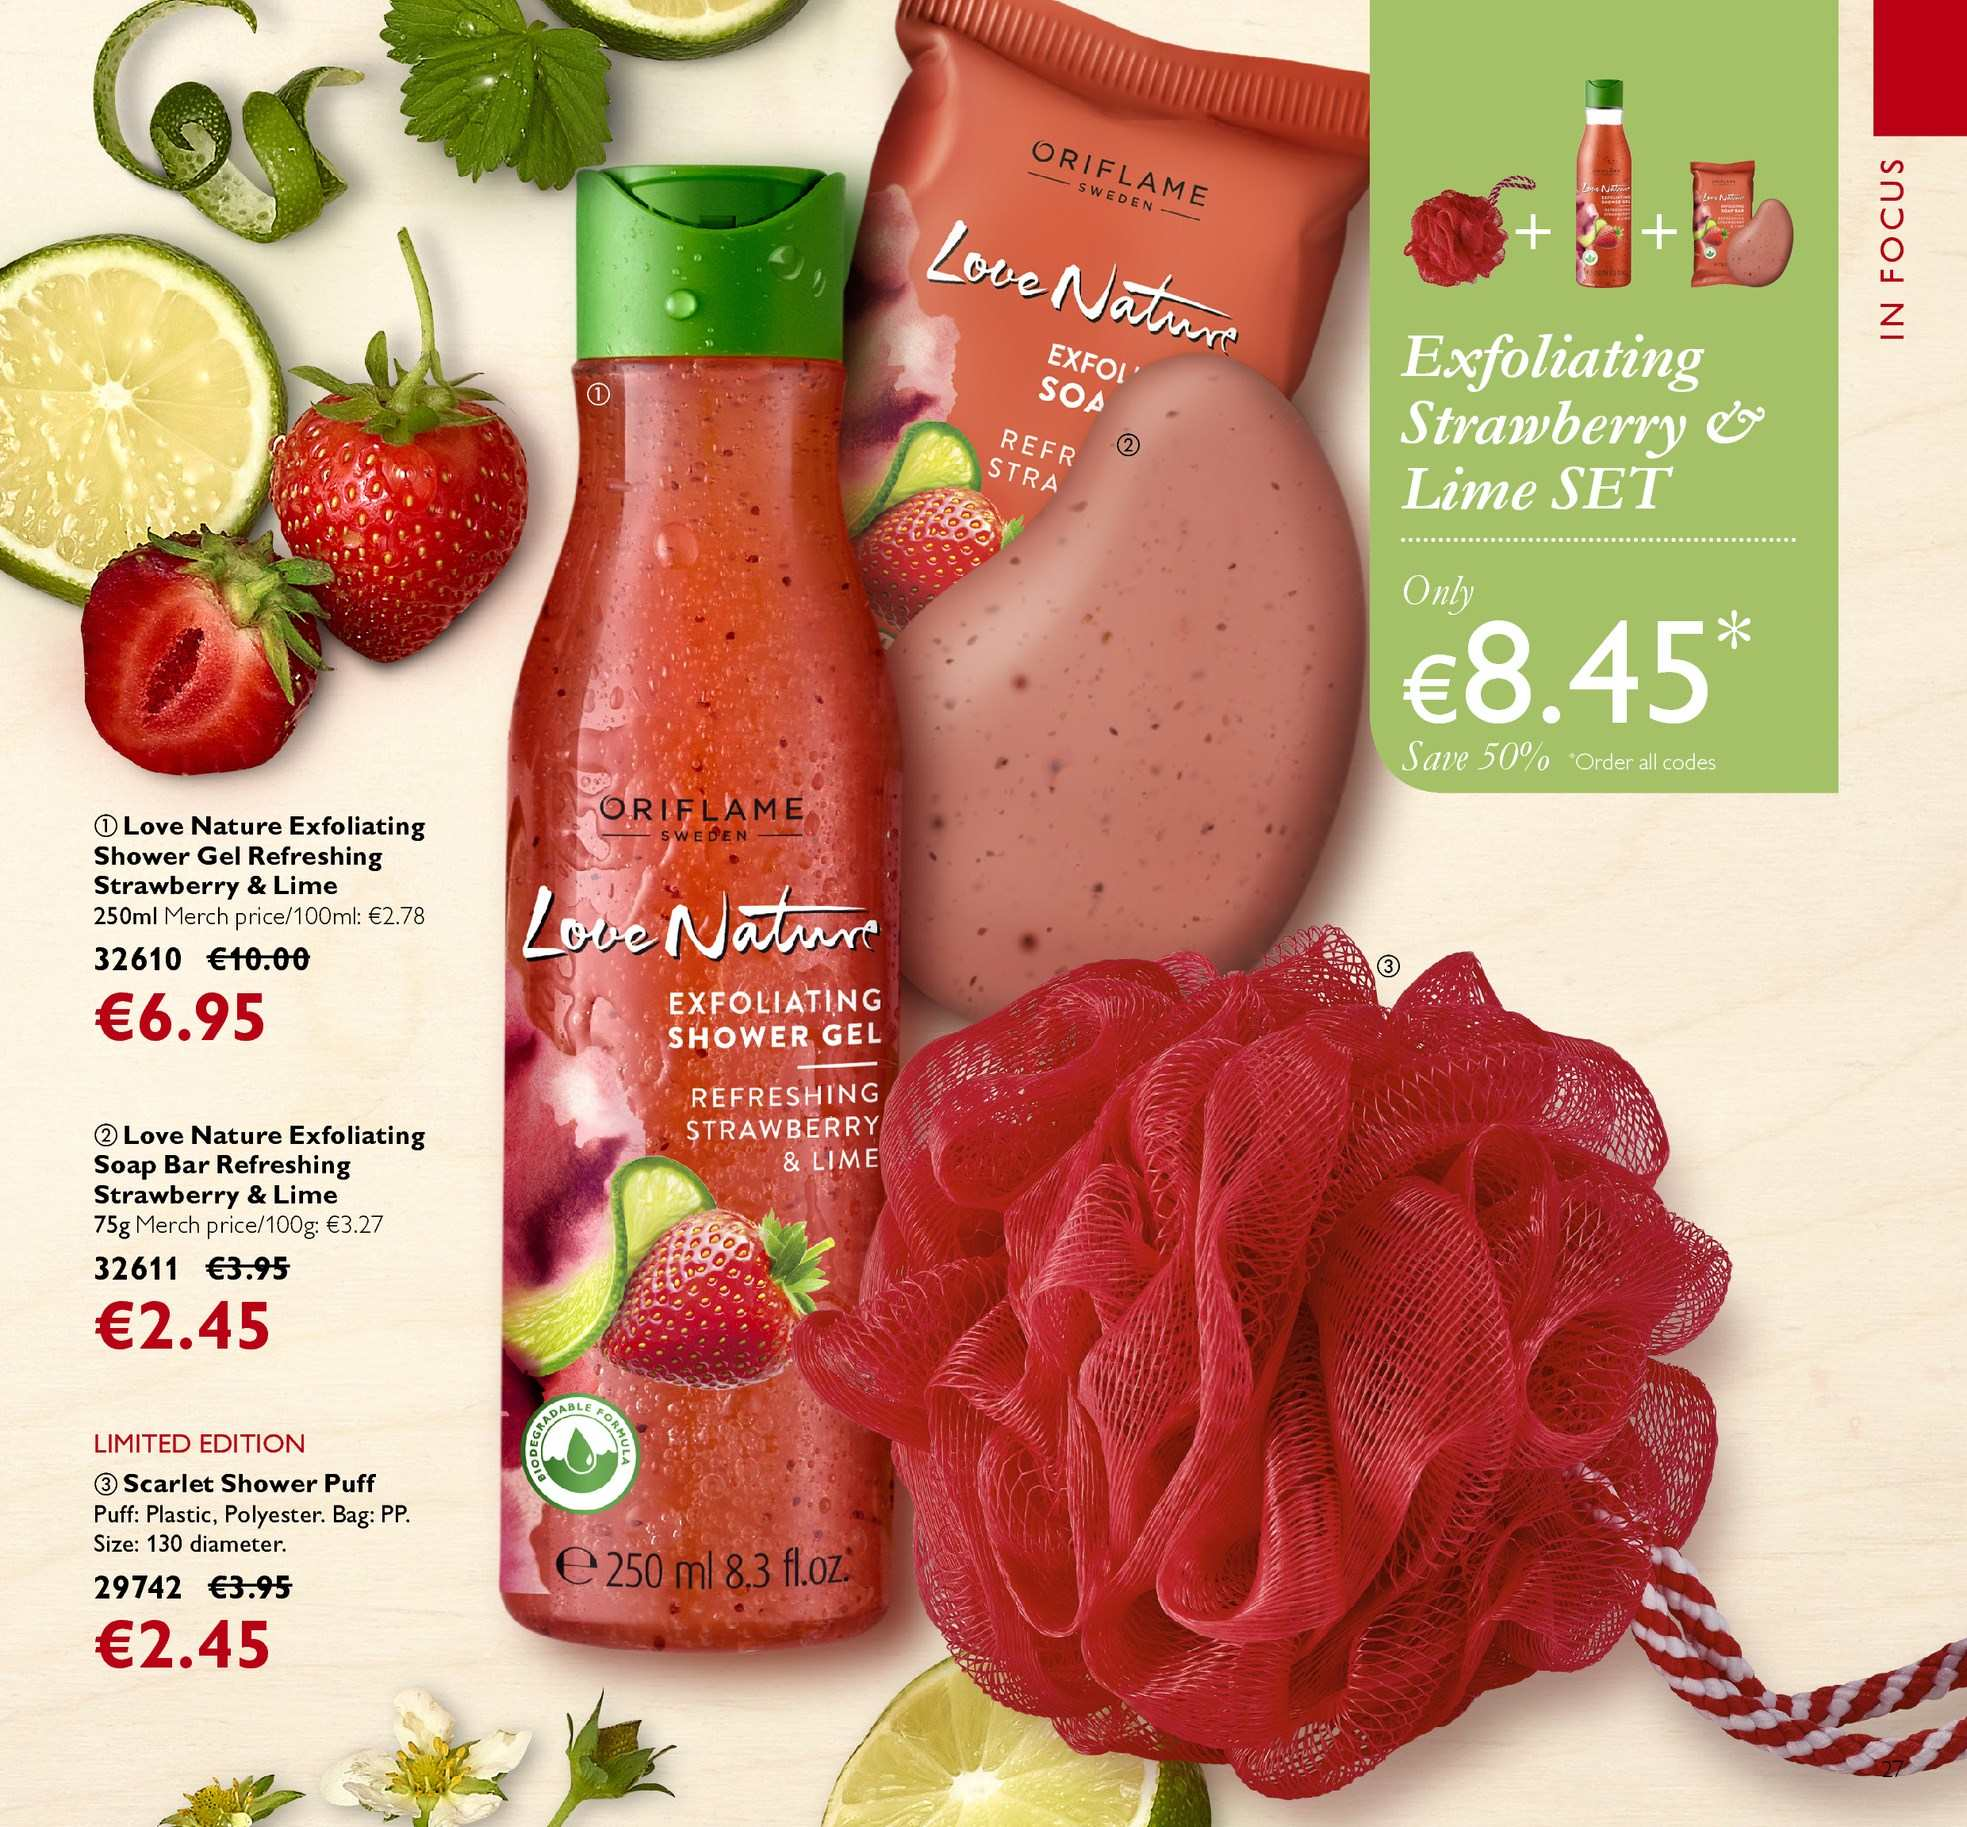 Oriflame offer  - 13.4.2018 - 3.5.2018 - Sales products - shower gel, soap bar, soap, Love Nature. Page 27.